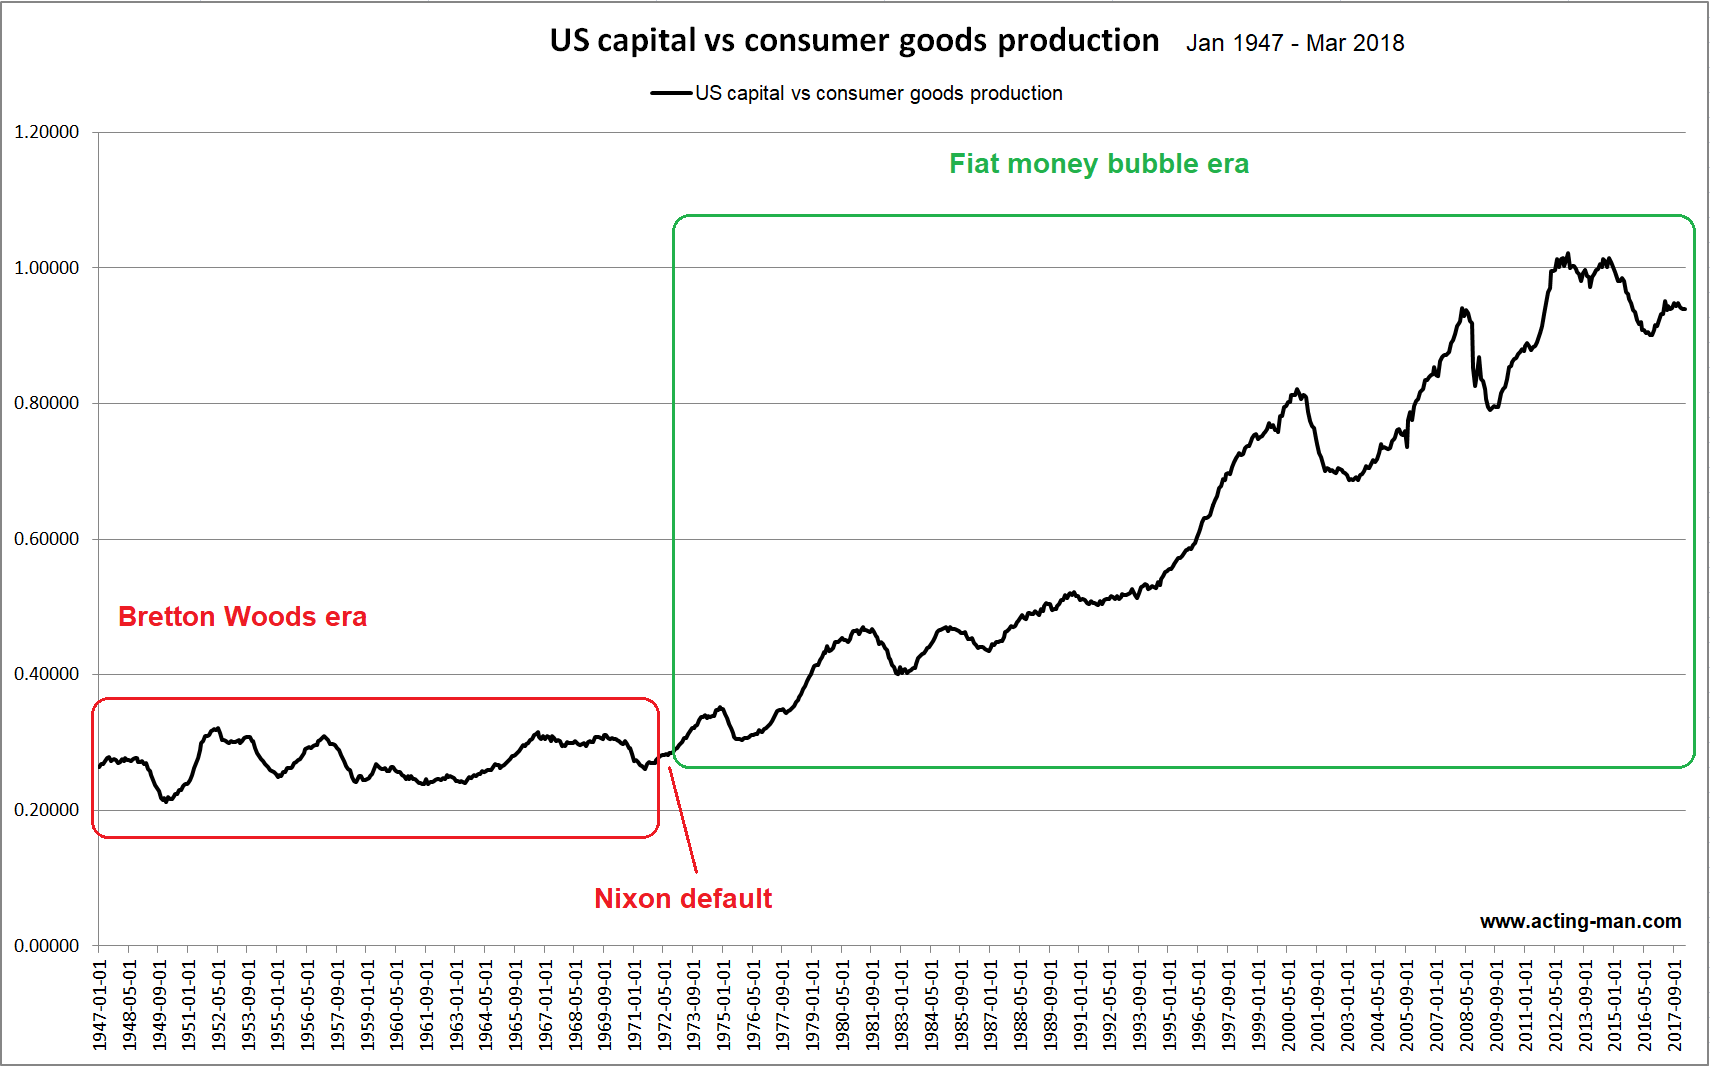 US Capital vs Consumer Goods Production, Jan 1947 - Mar 2018